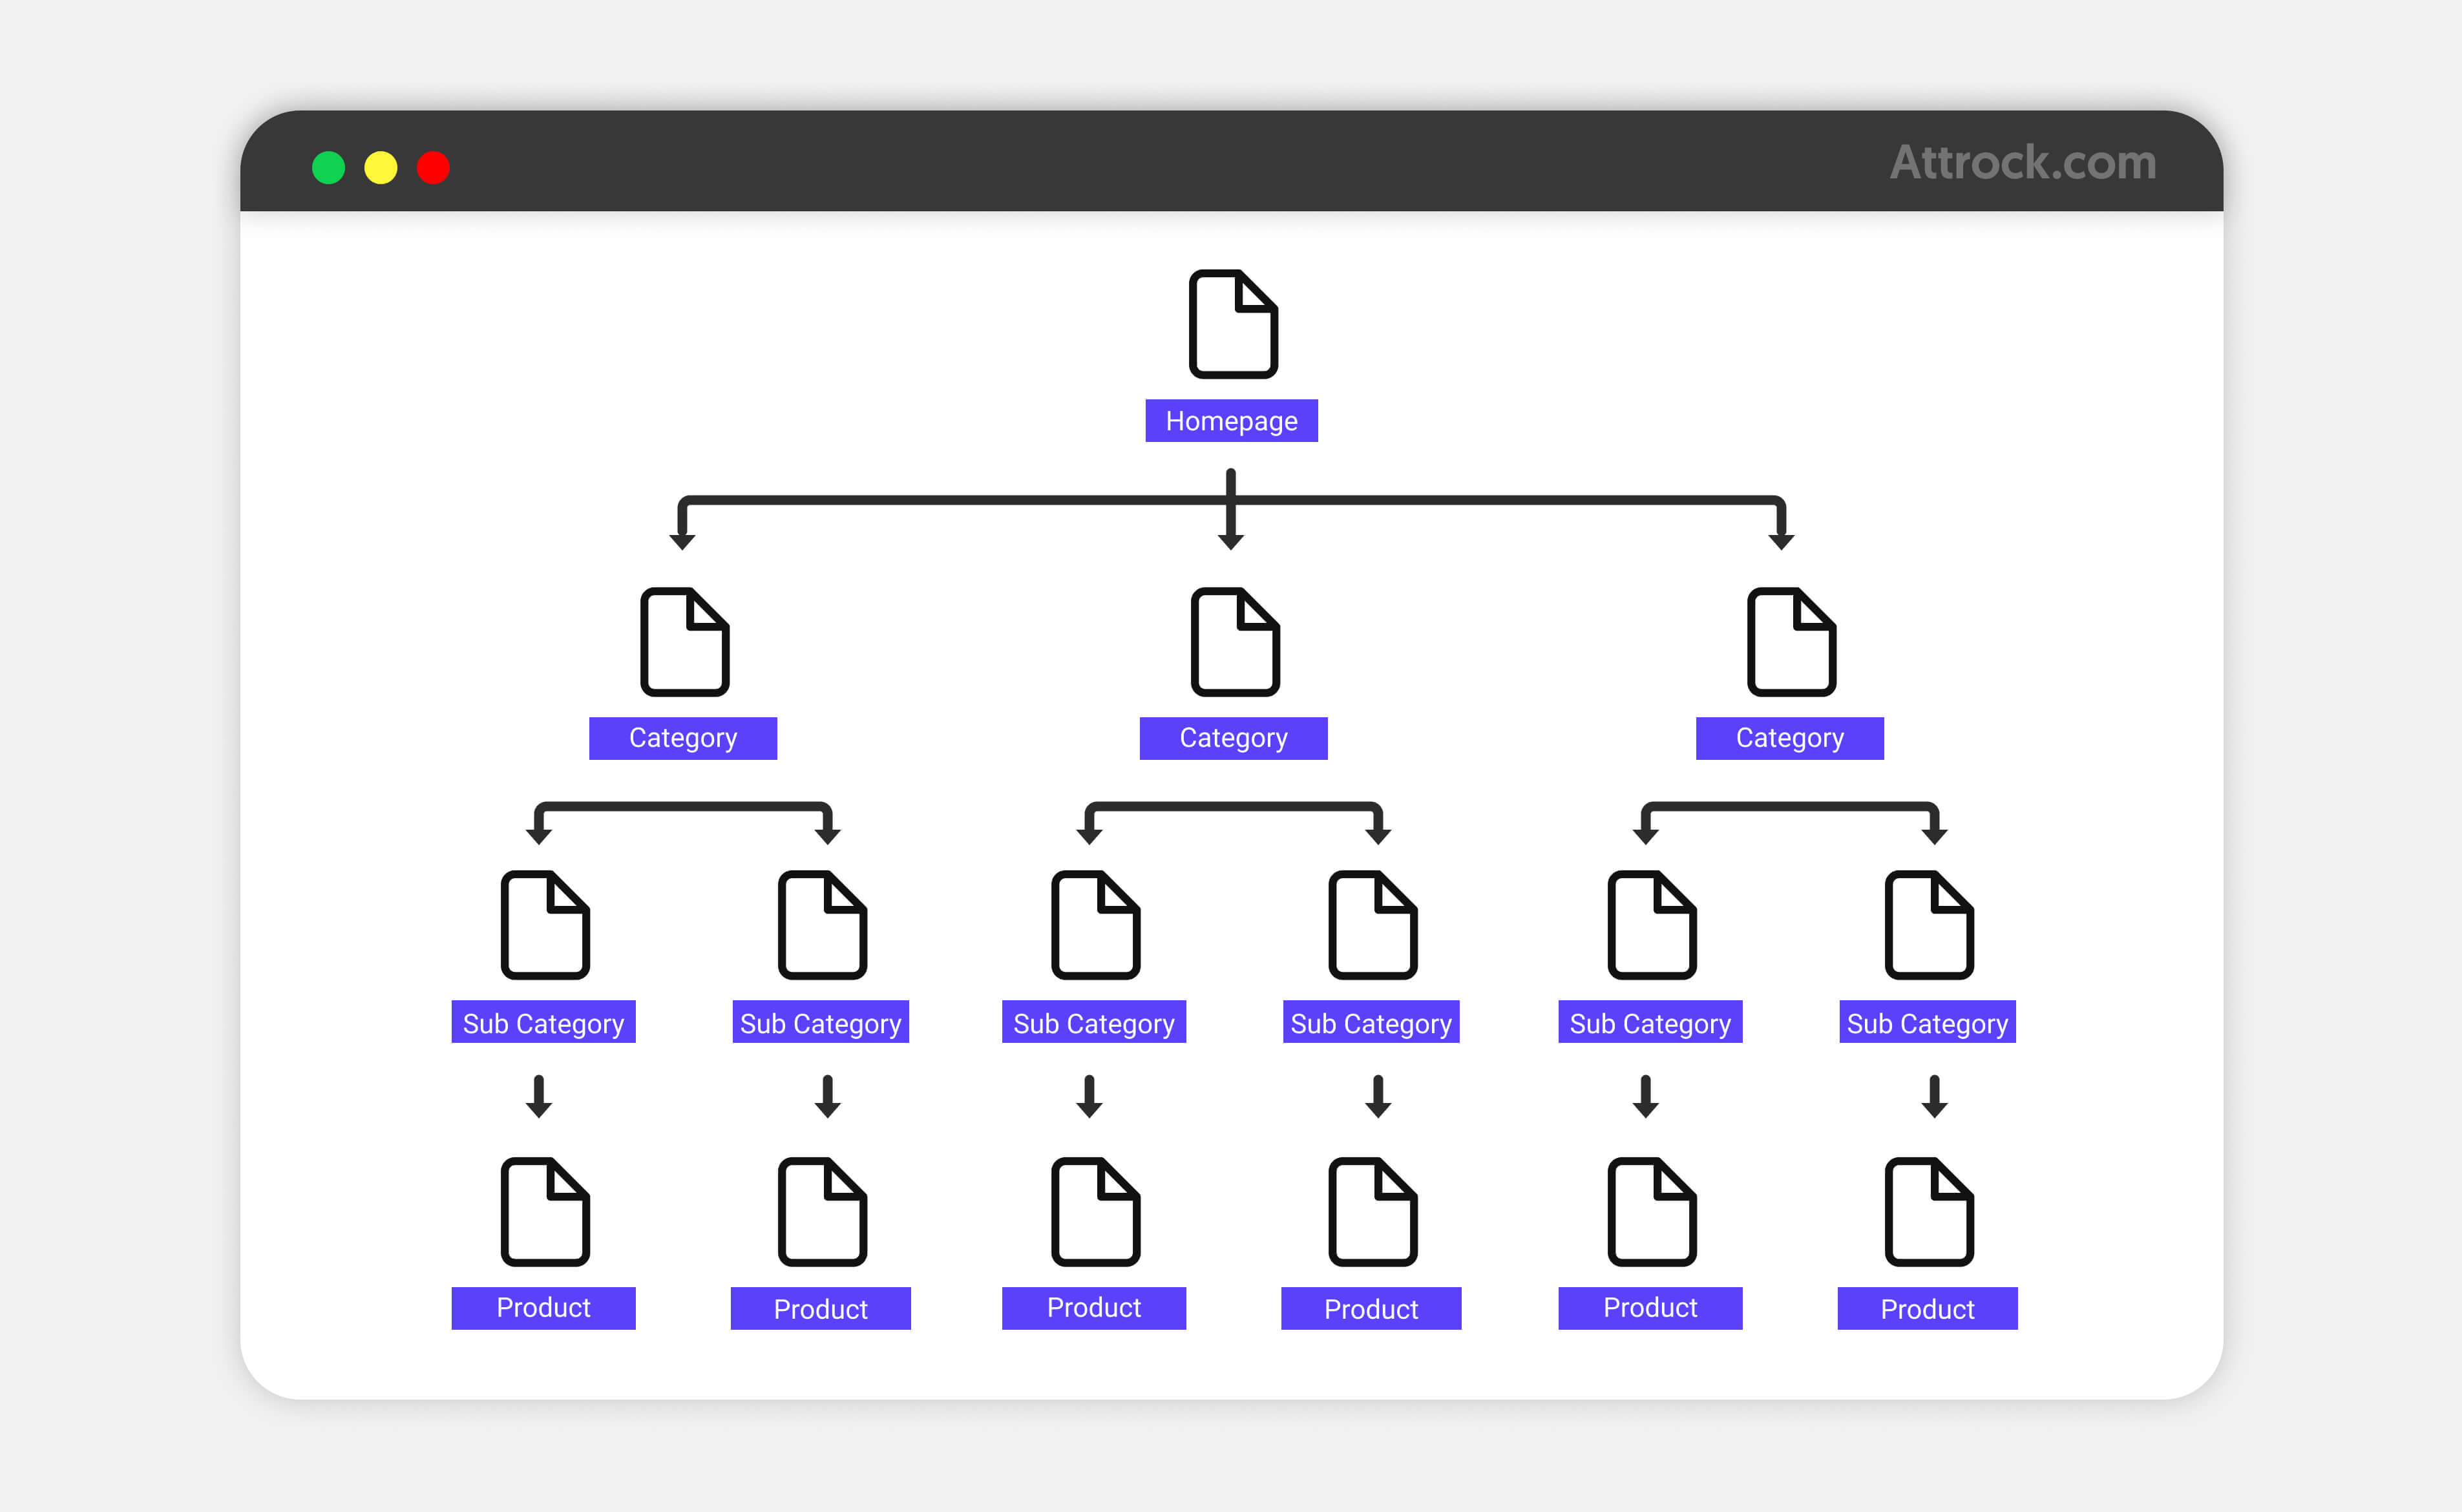 Site Architecture Hierarchical Structure